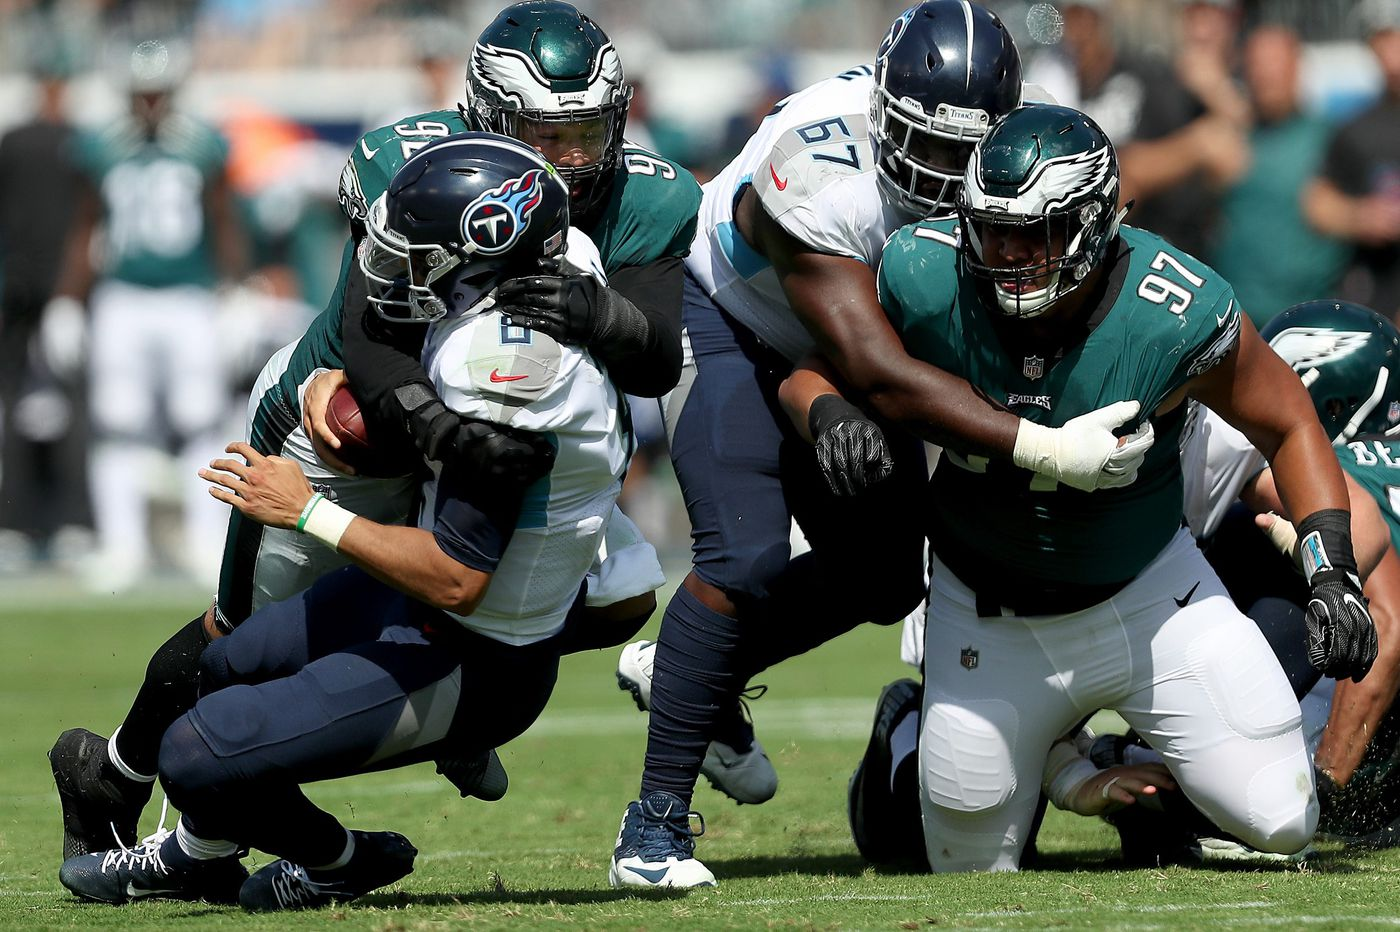 Titans 26, Eagles 23: Eagles drop to 2-2 as defense can't stop Marcus Mariota in overtime